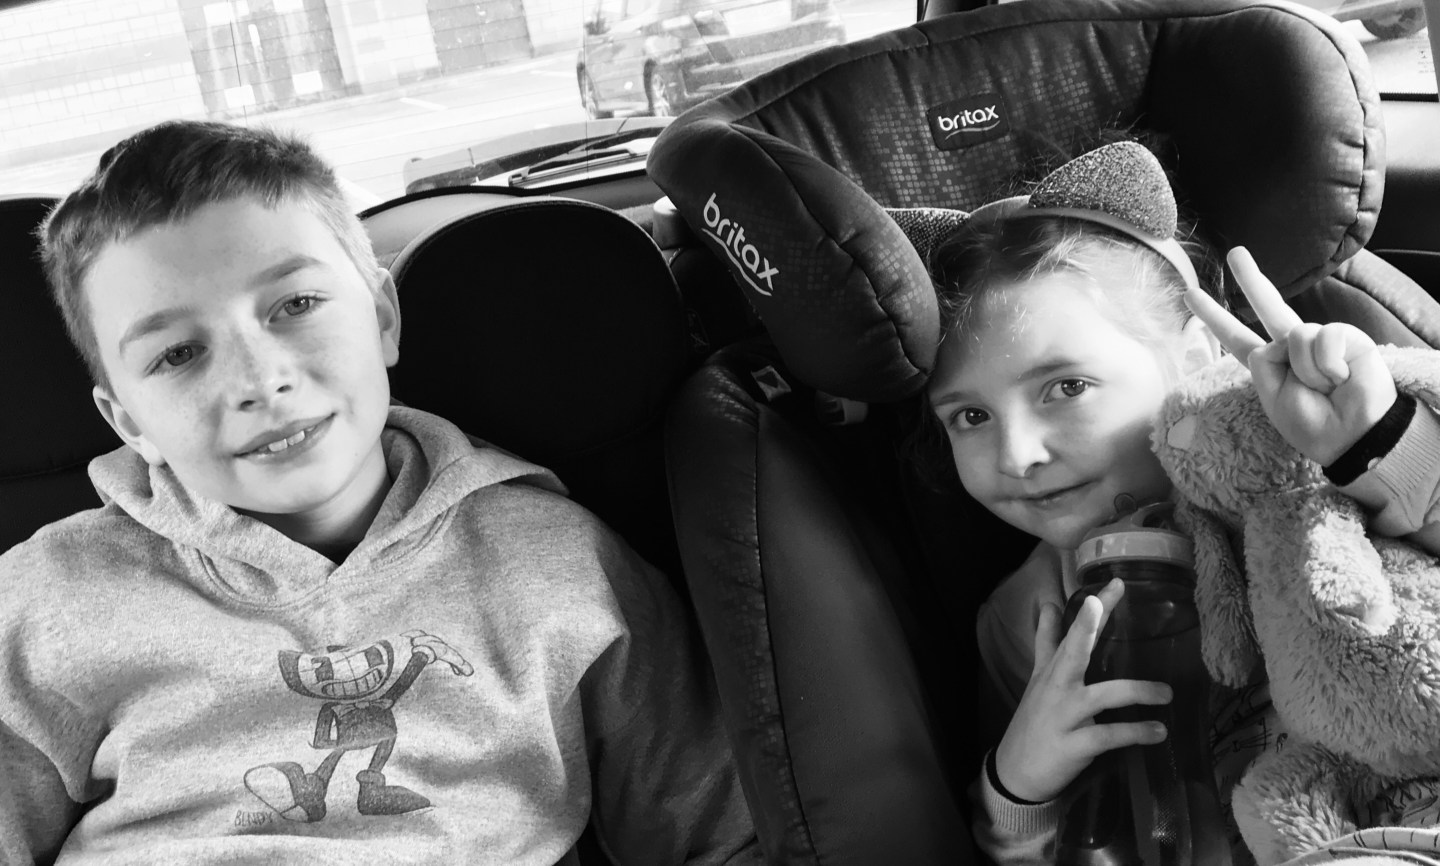 The Siblings Project – Happy Travels (March 2019)